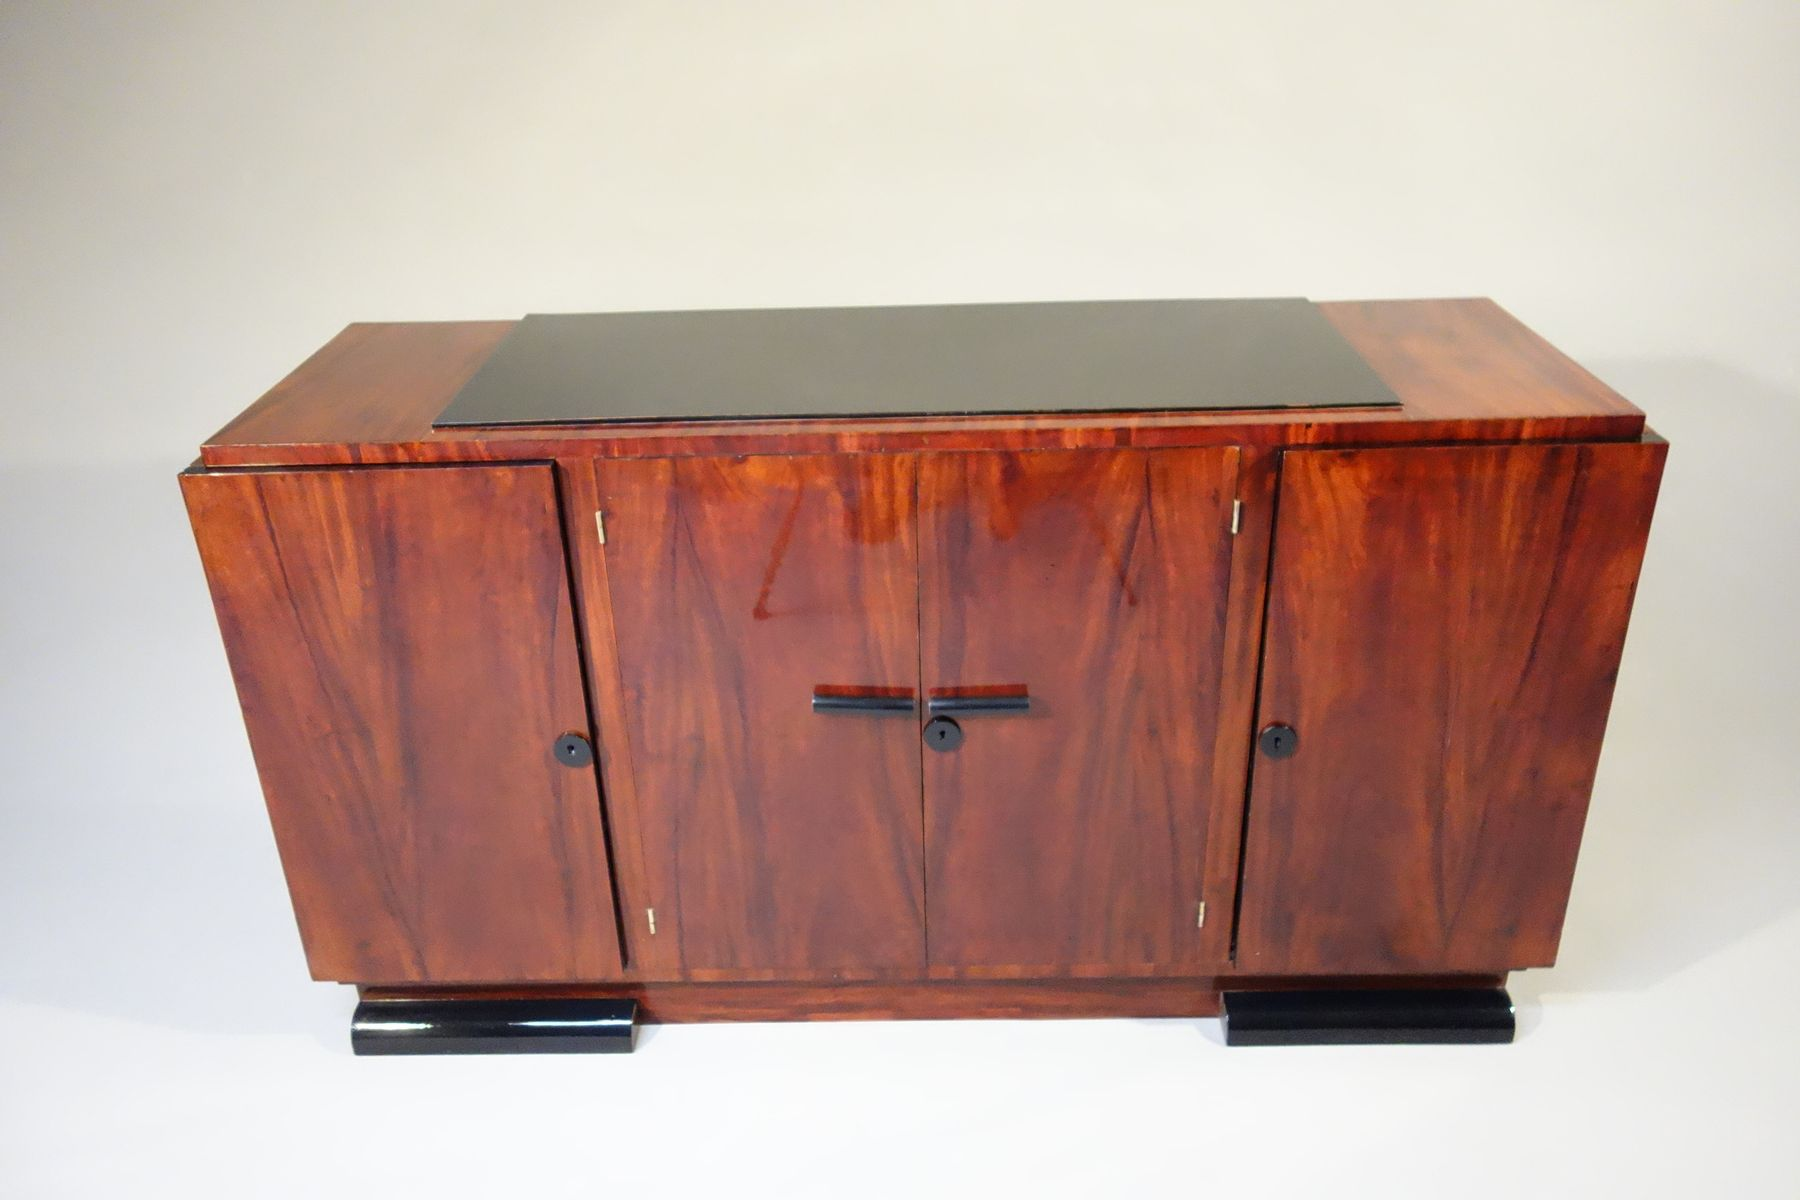 Art Deco Buffet for sale at Pamono